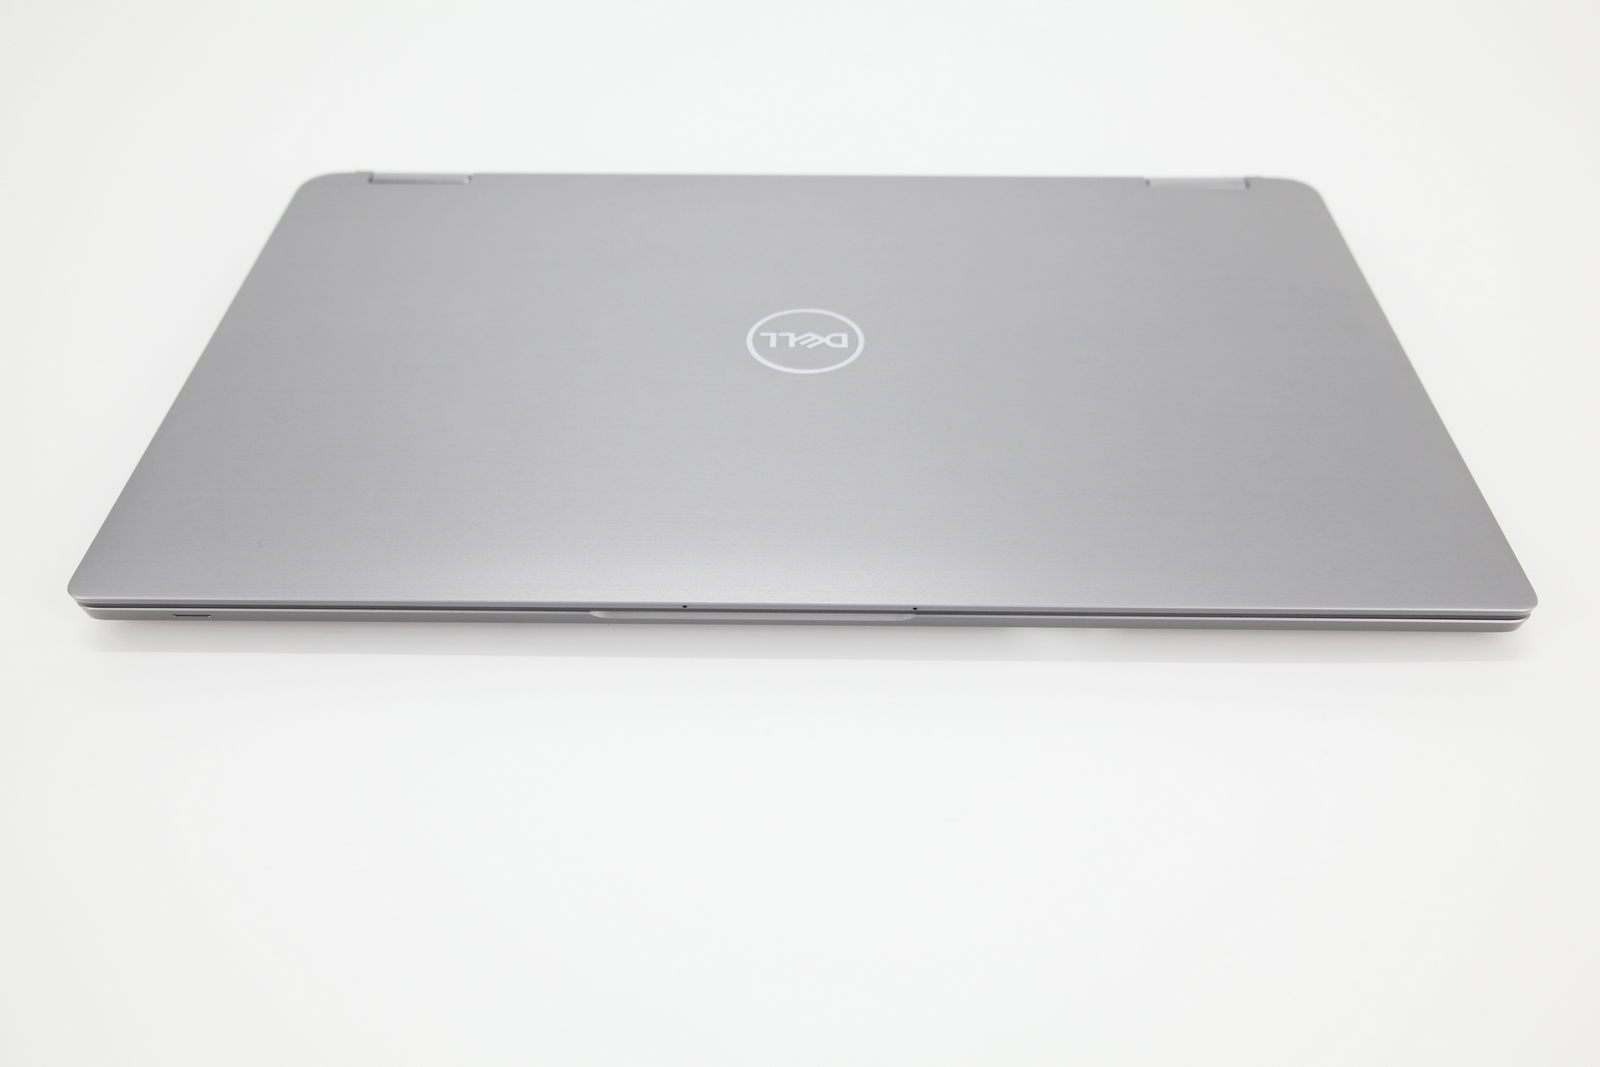 Dell Latitude 7400 2-in-1 Touch Laptop: Core i5-8365U, 8GB, RAM, 256GB, warranty - CruiseTech